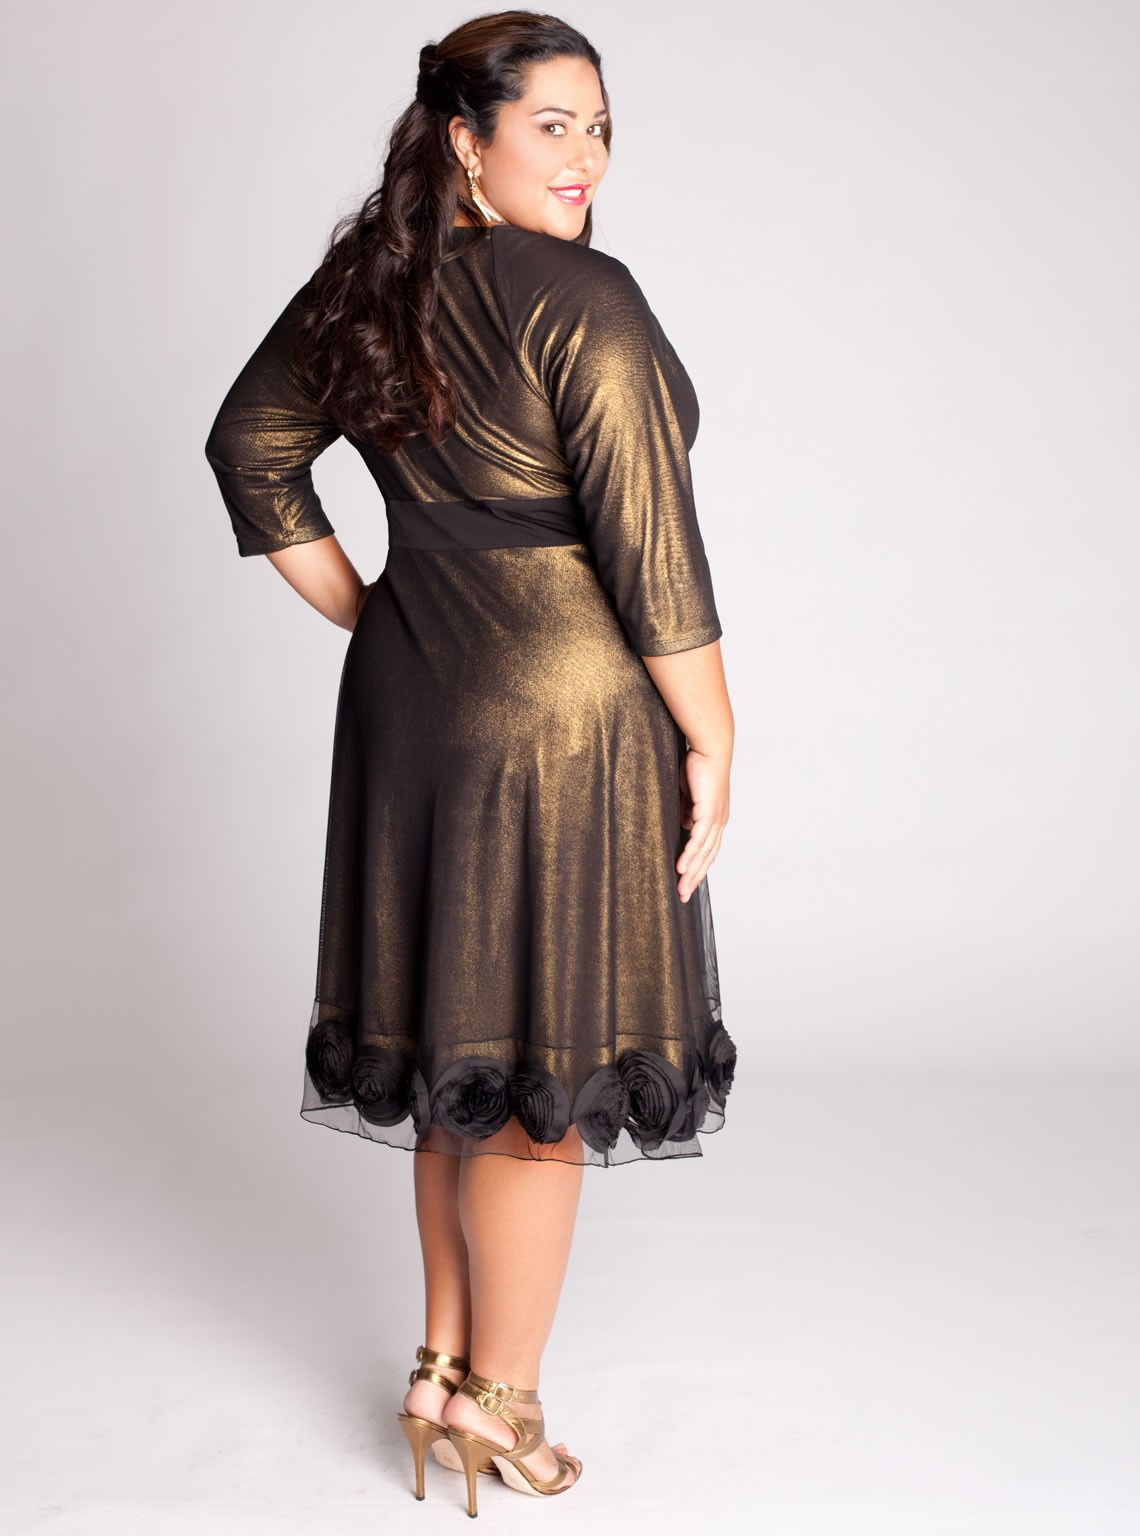 plus size gowns, plus size nightgowns, plus size evening gowns